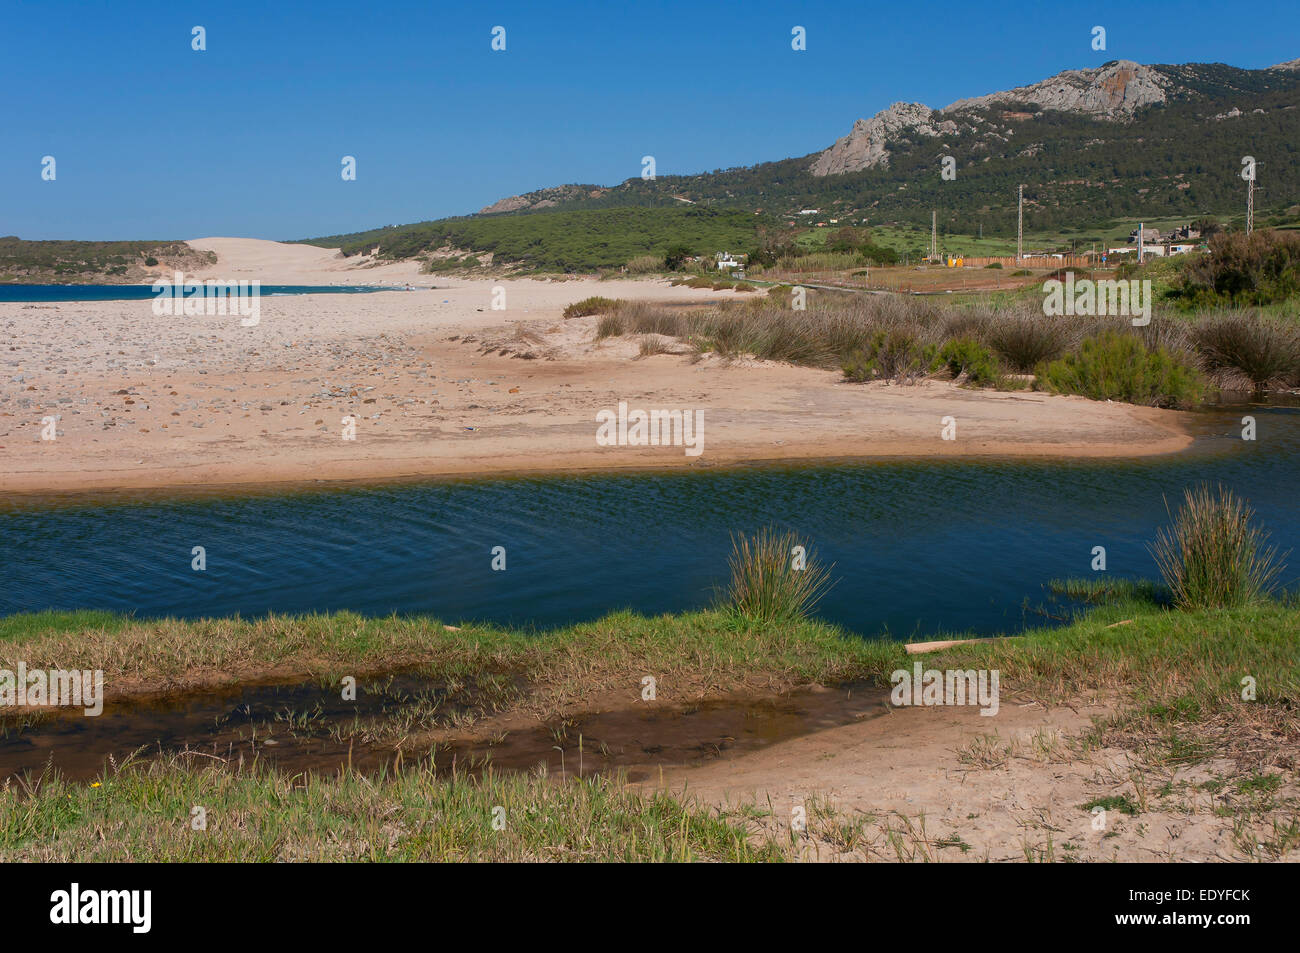 Bolonia beach and Sierra de la Plata, Tarifa, Cadiz province, Region of Andalusia, Spain, Europe Stock Photo